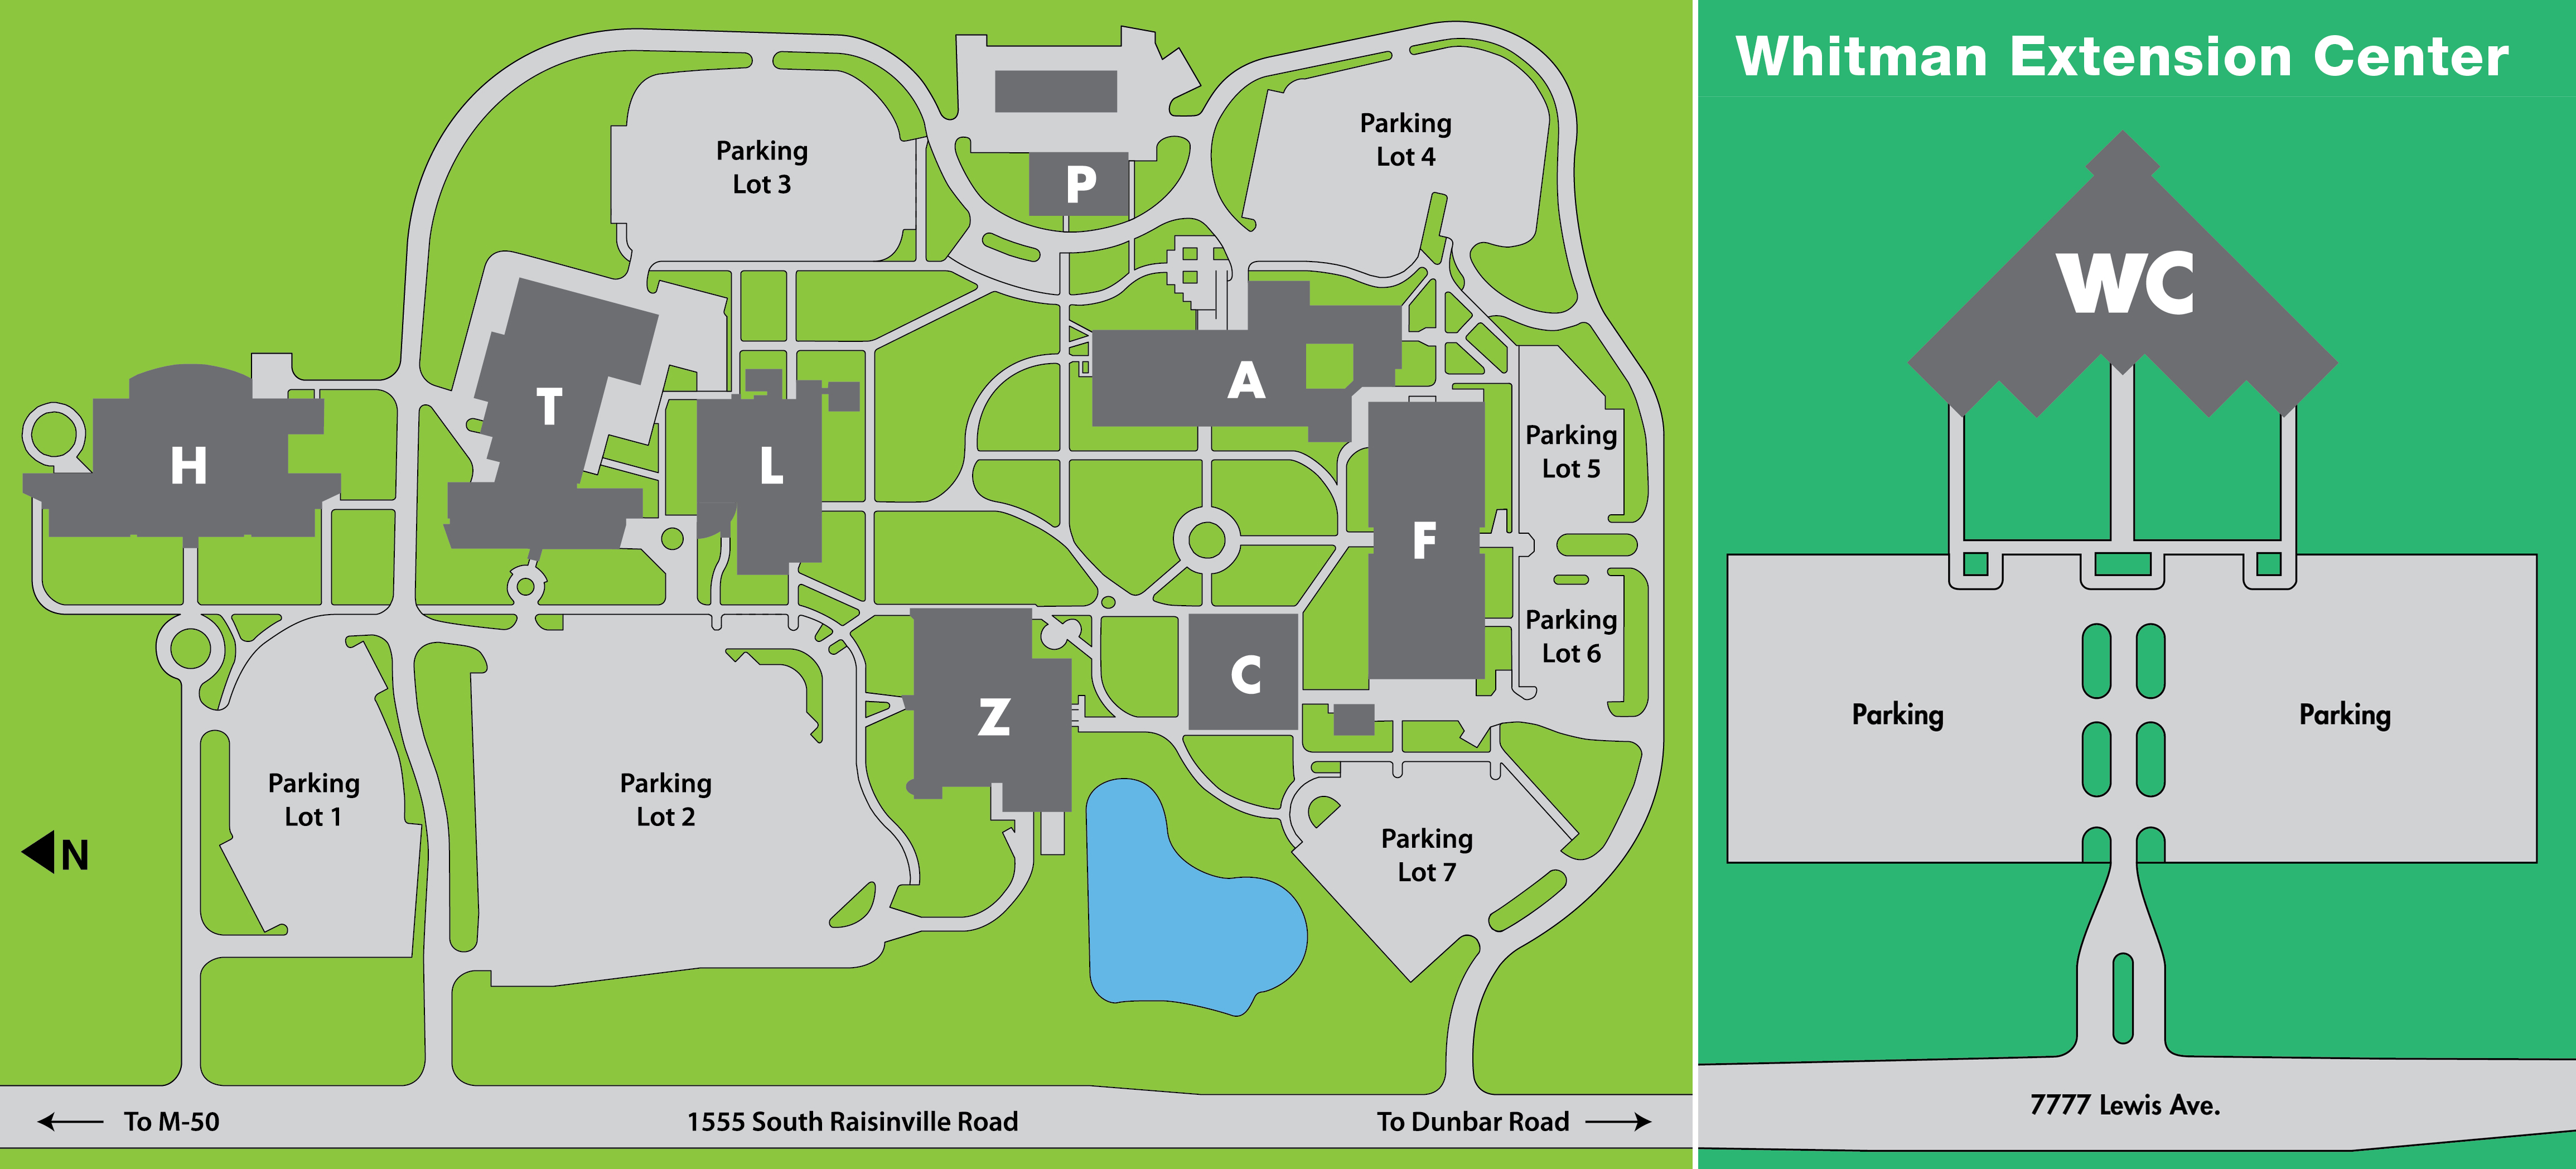 MCCC Main Campus and Whitman Center Map